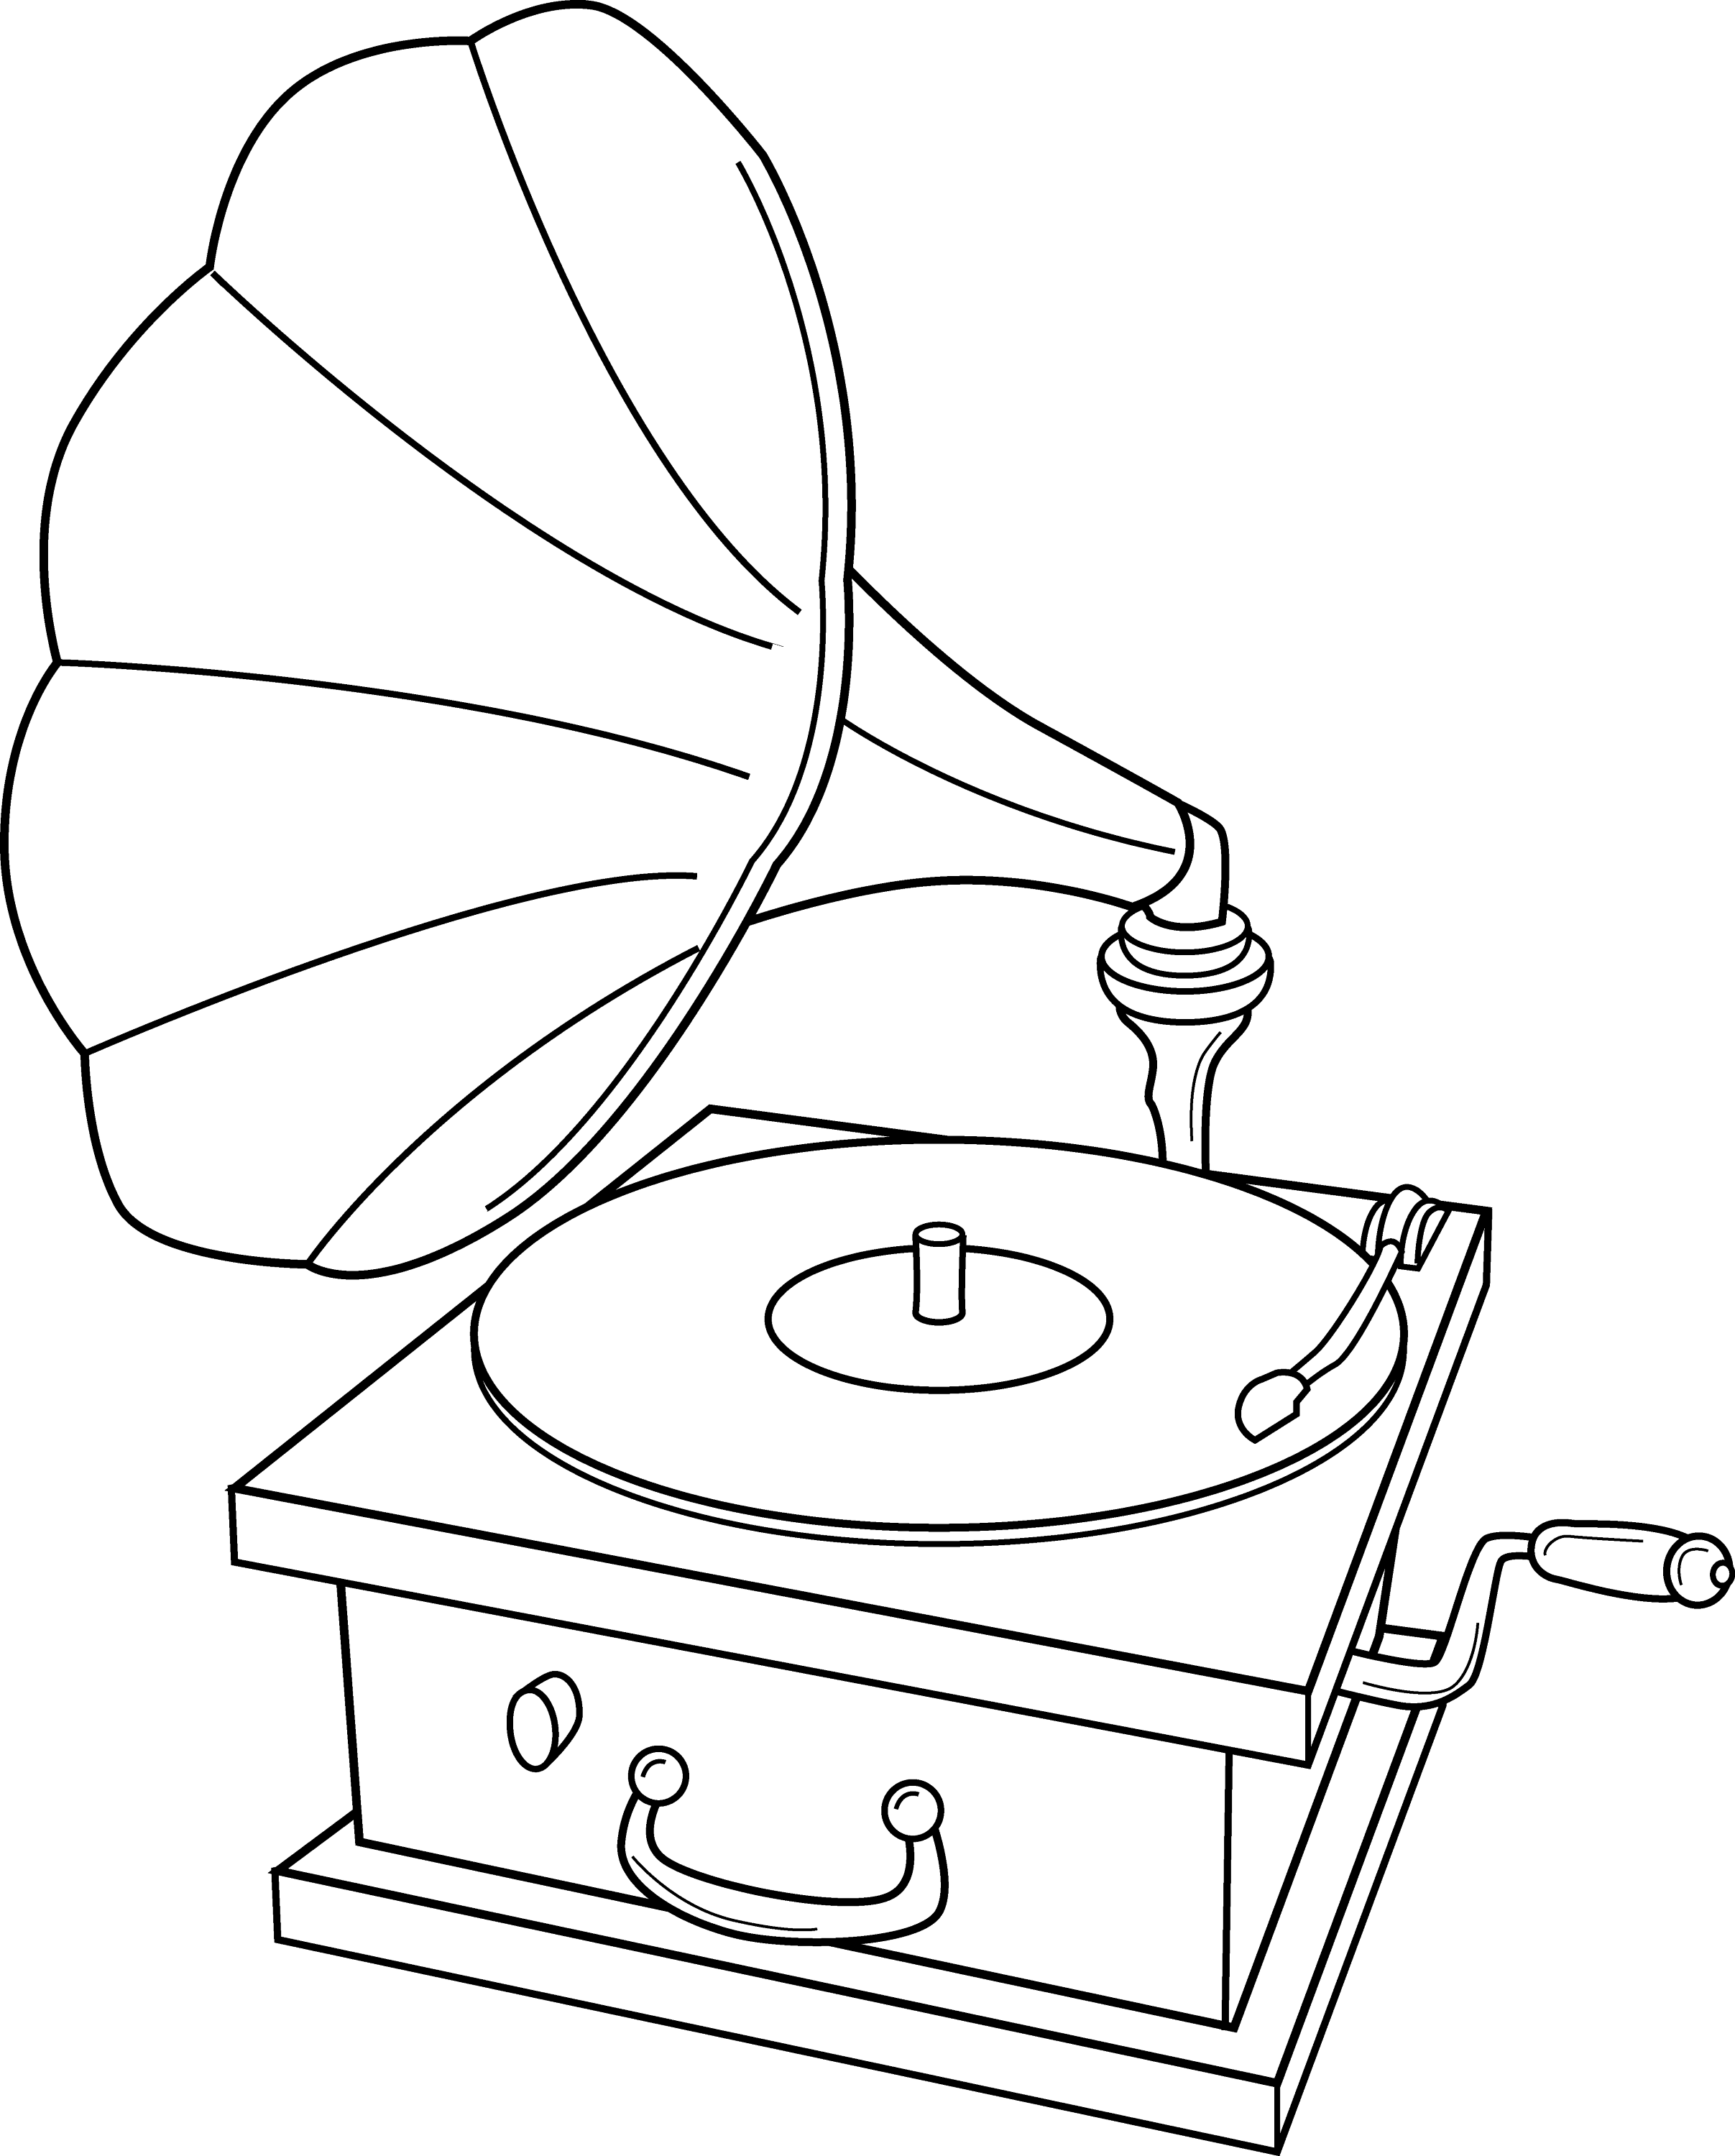 Record Player Coloring Page